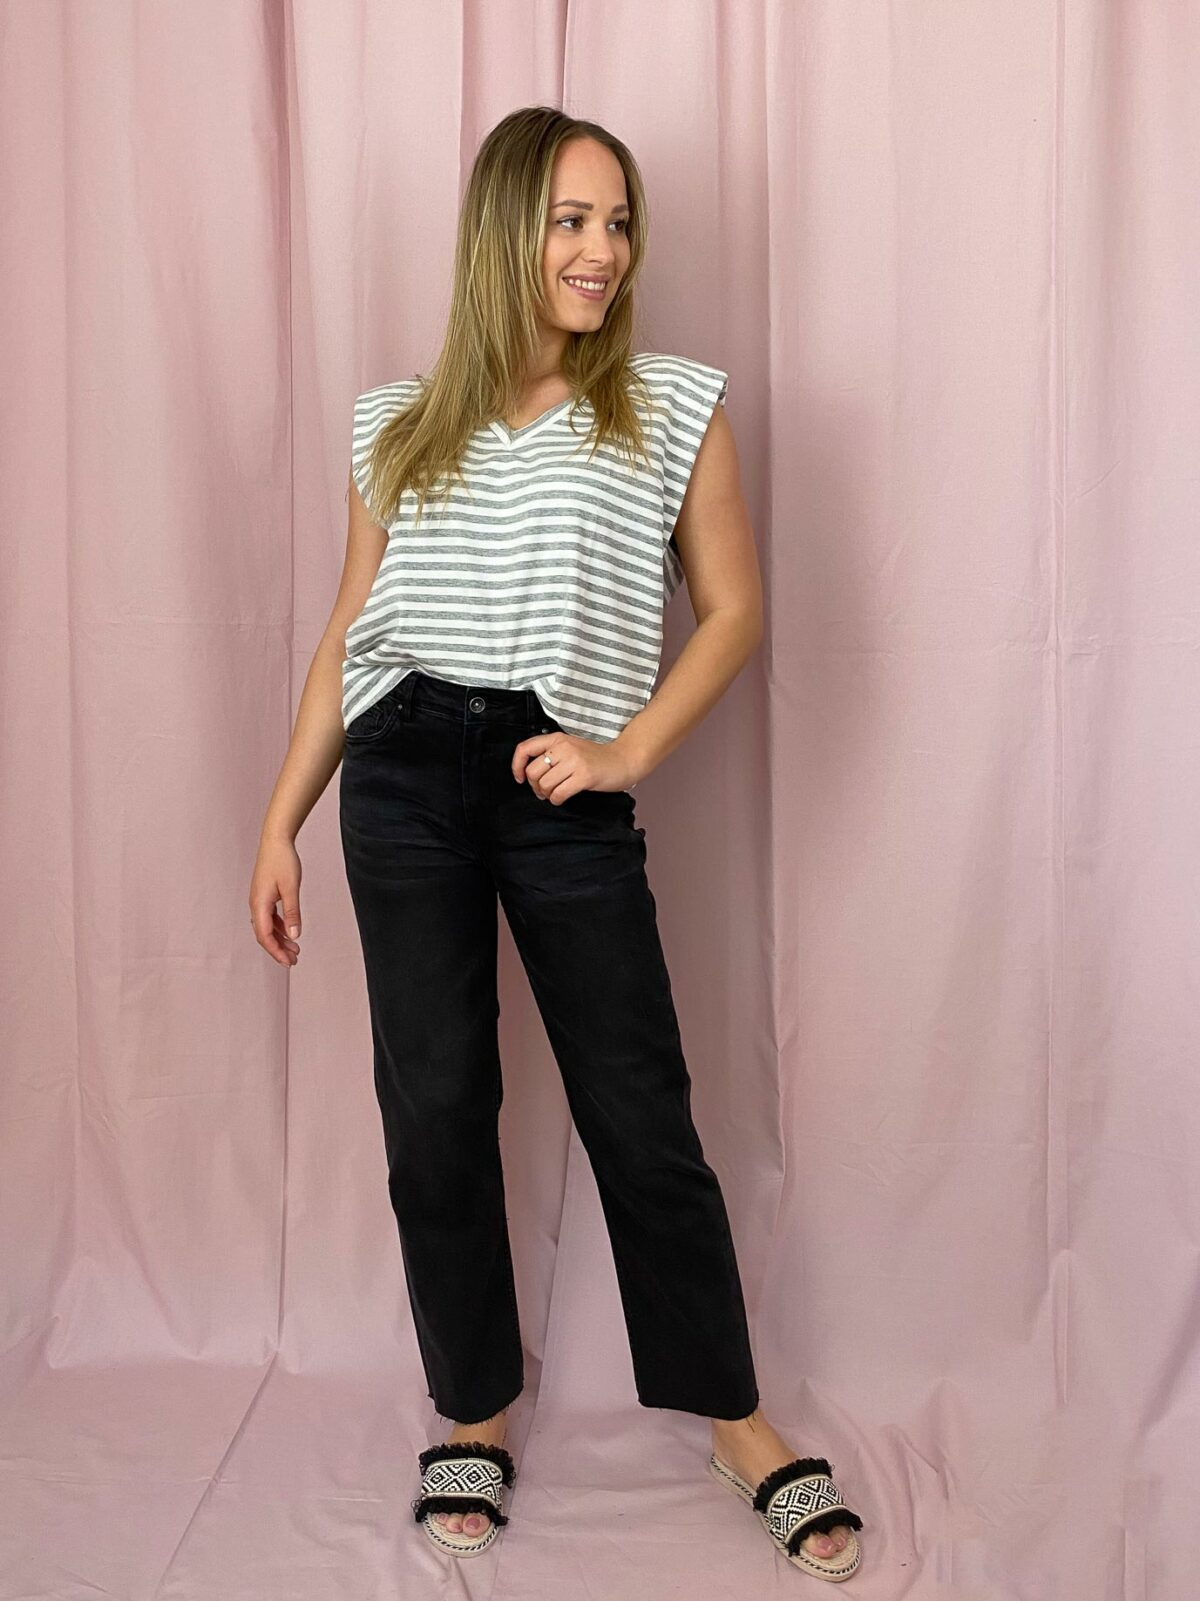 woman with a striped top and black denim pants